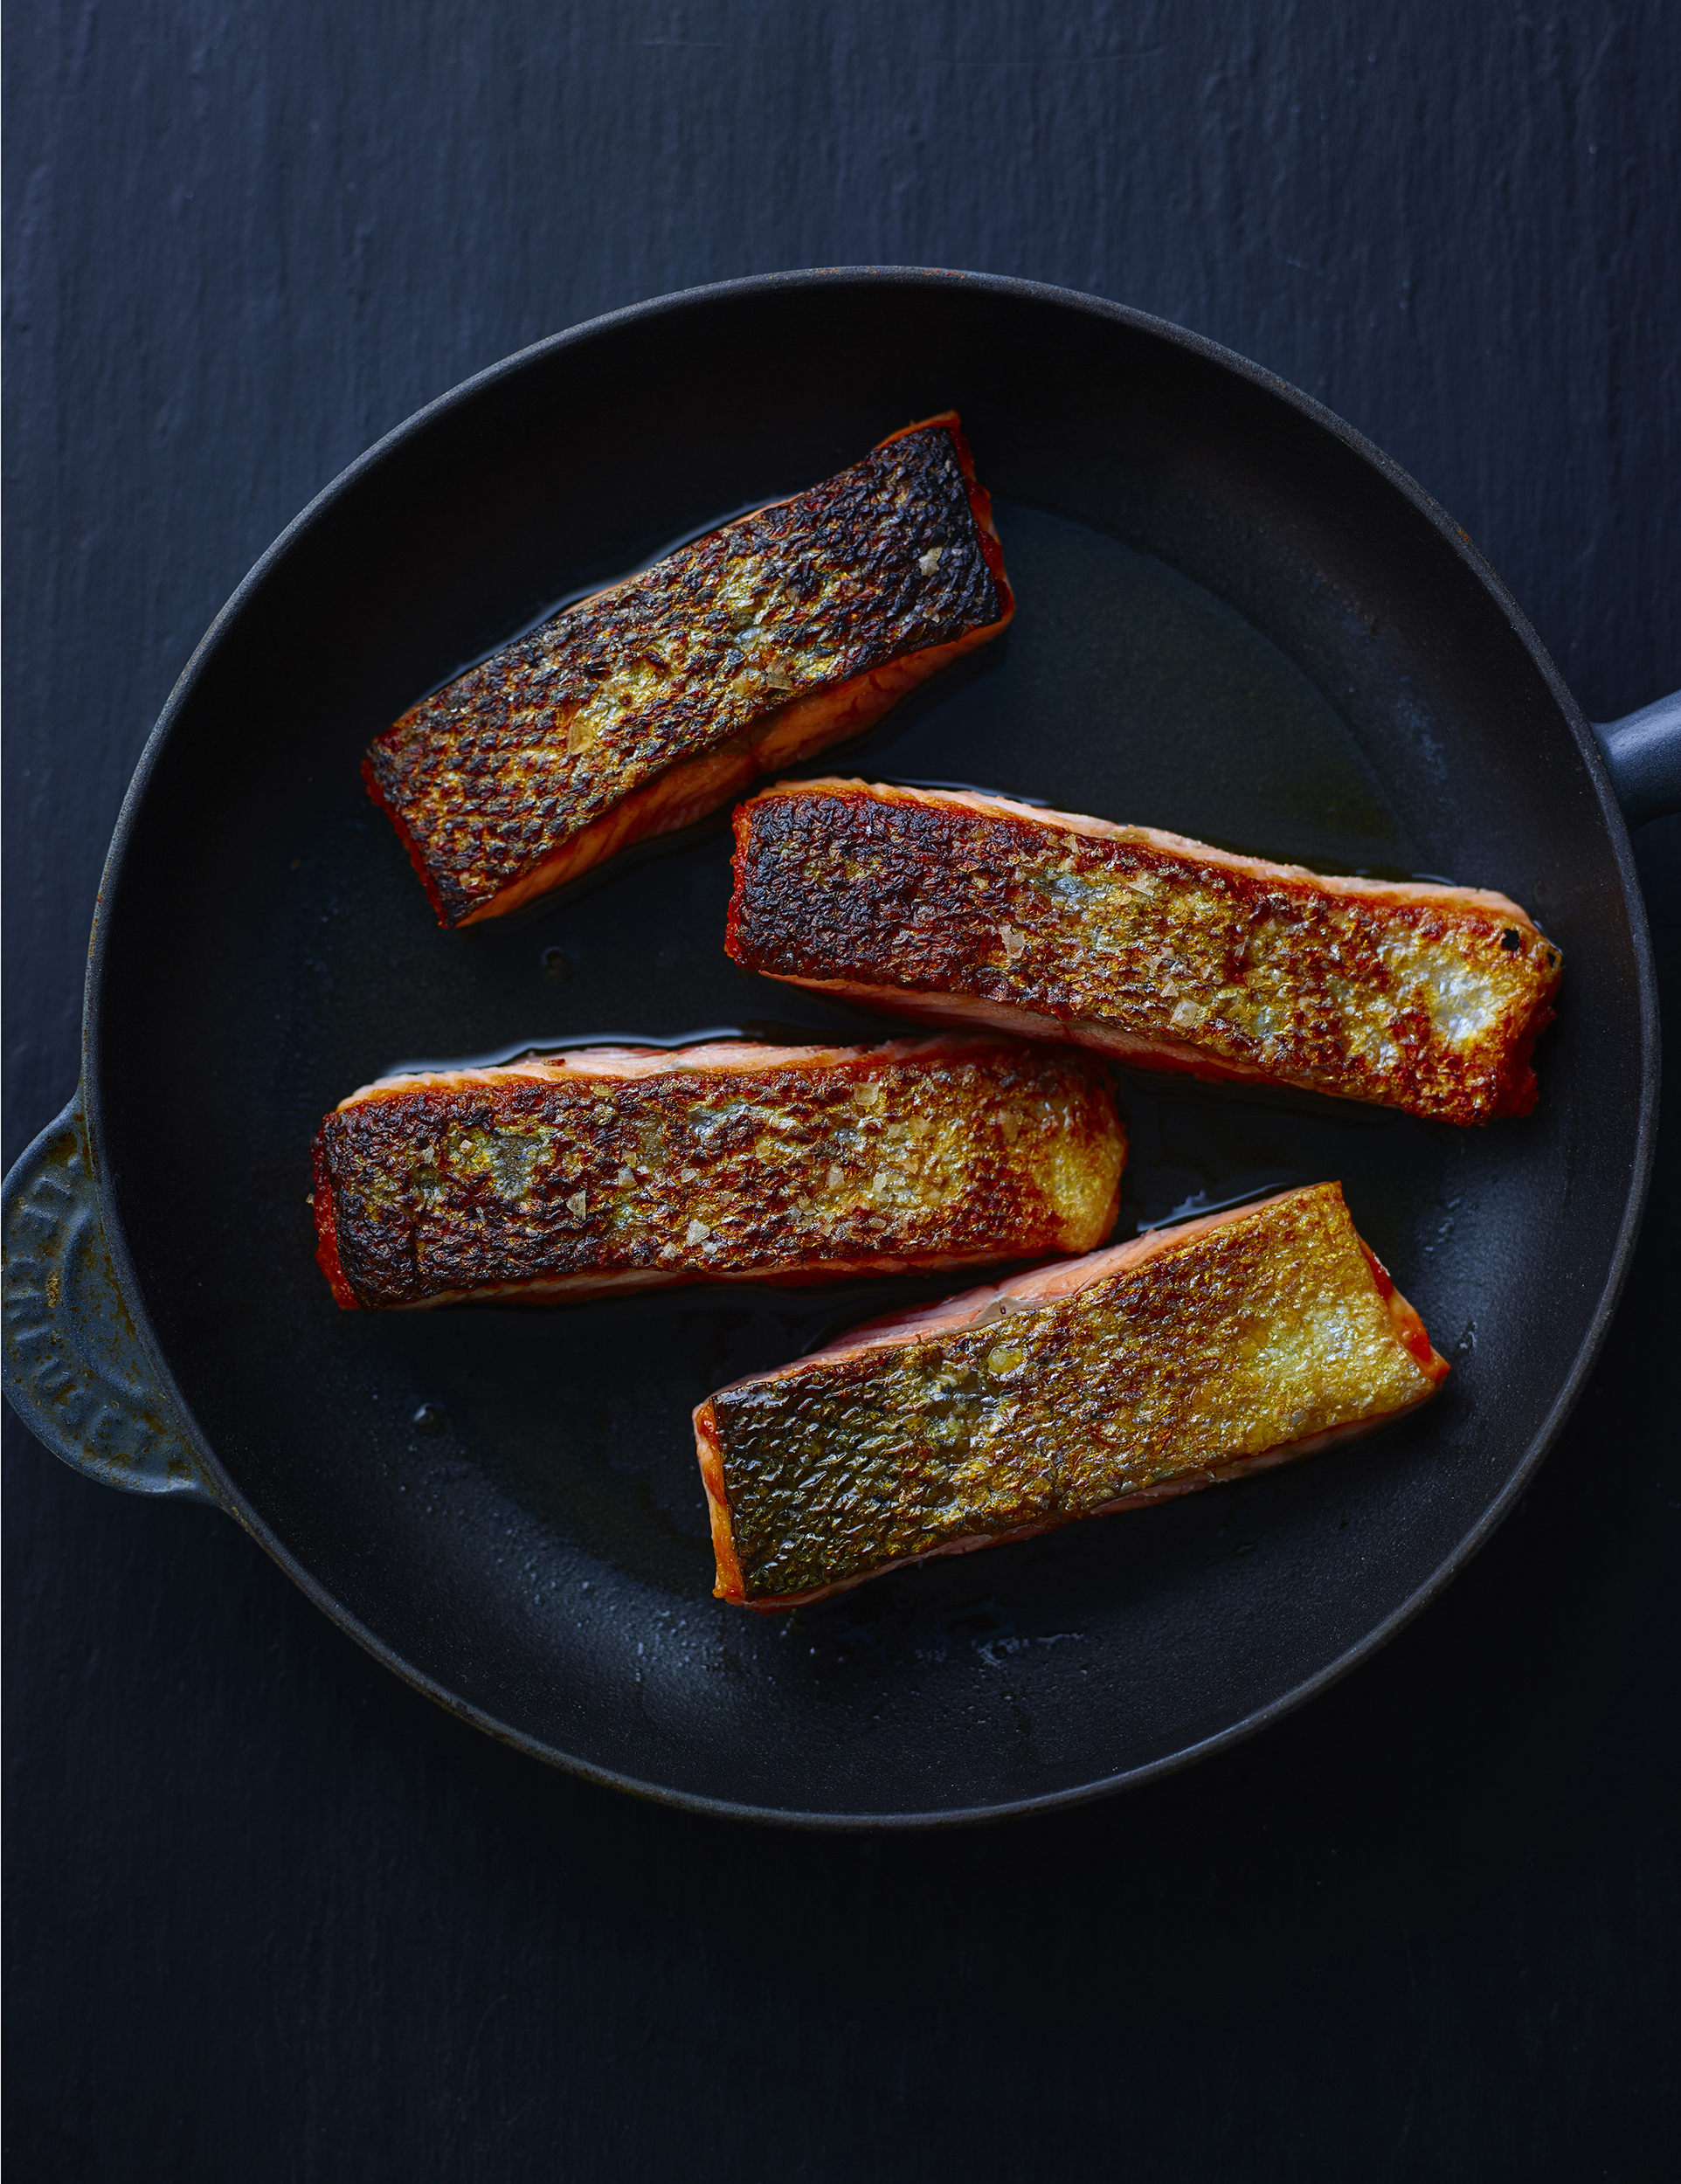 pan_fried_salmon_fillets_0297.jpg